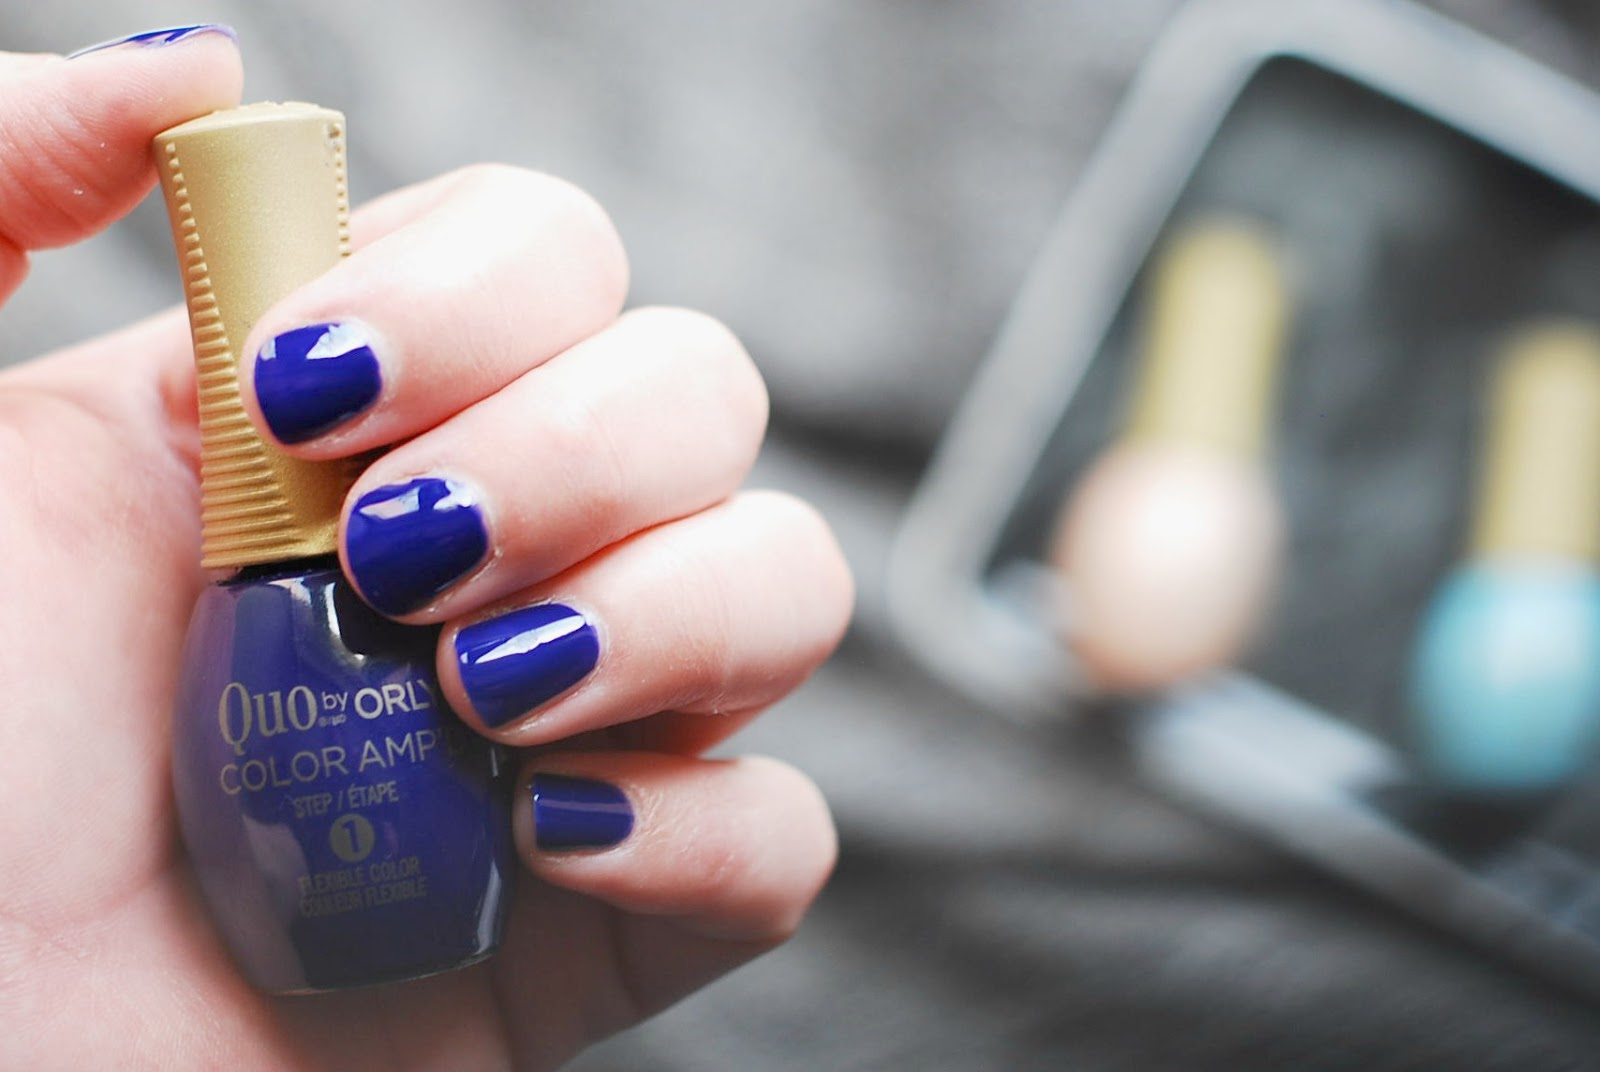 Quo by Orly Color Amp'd nail polish review blog Canada Stadium Way